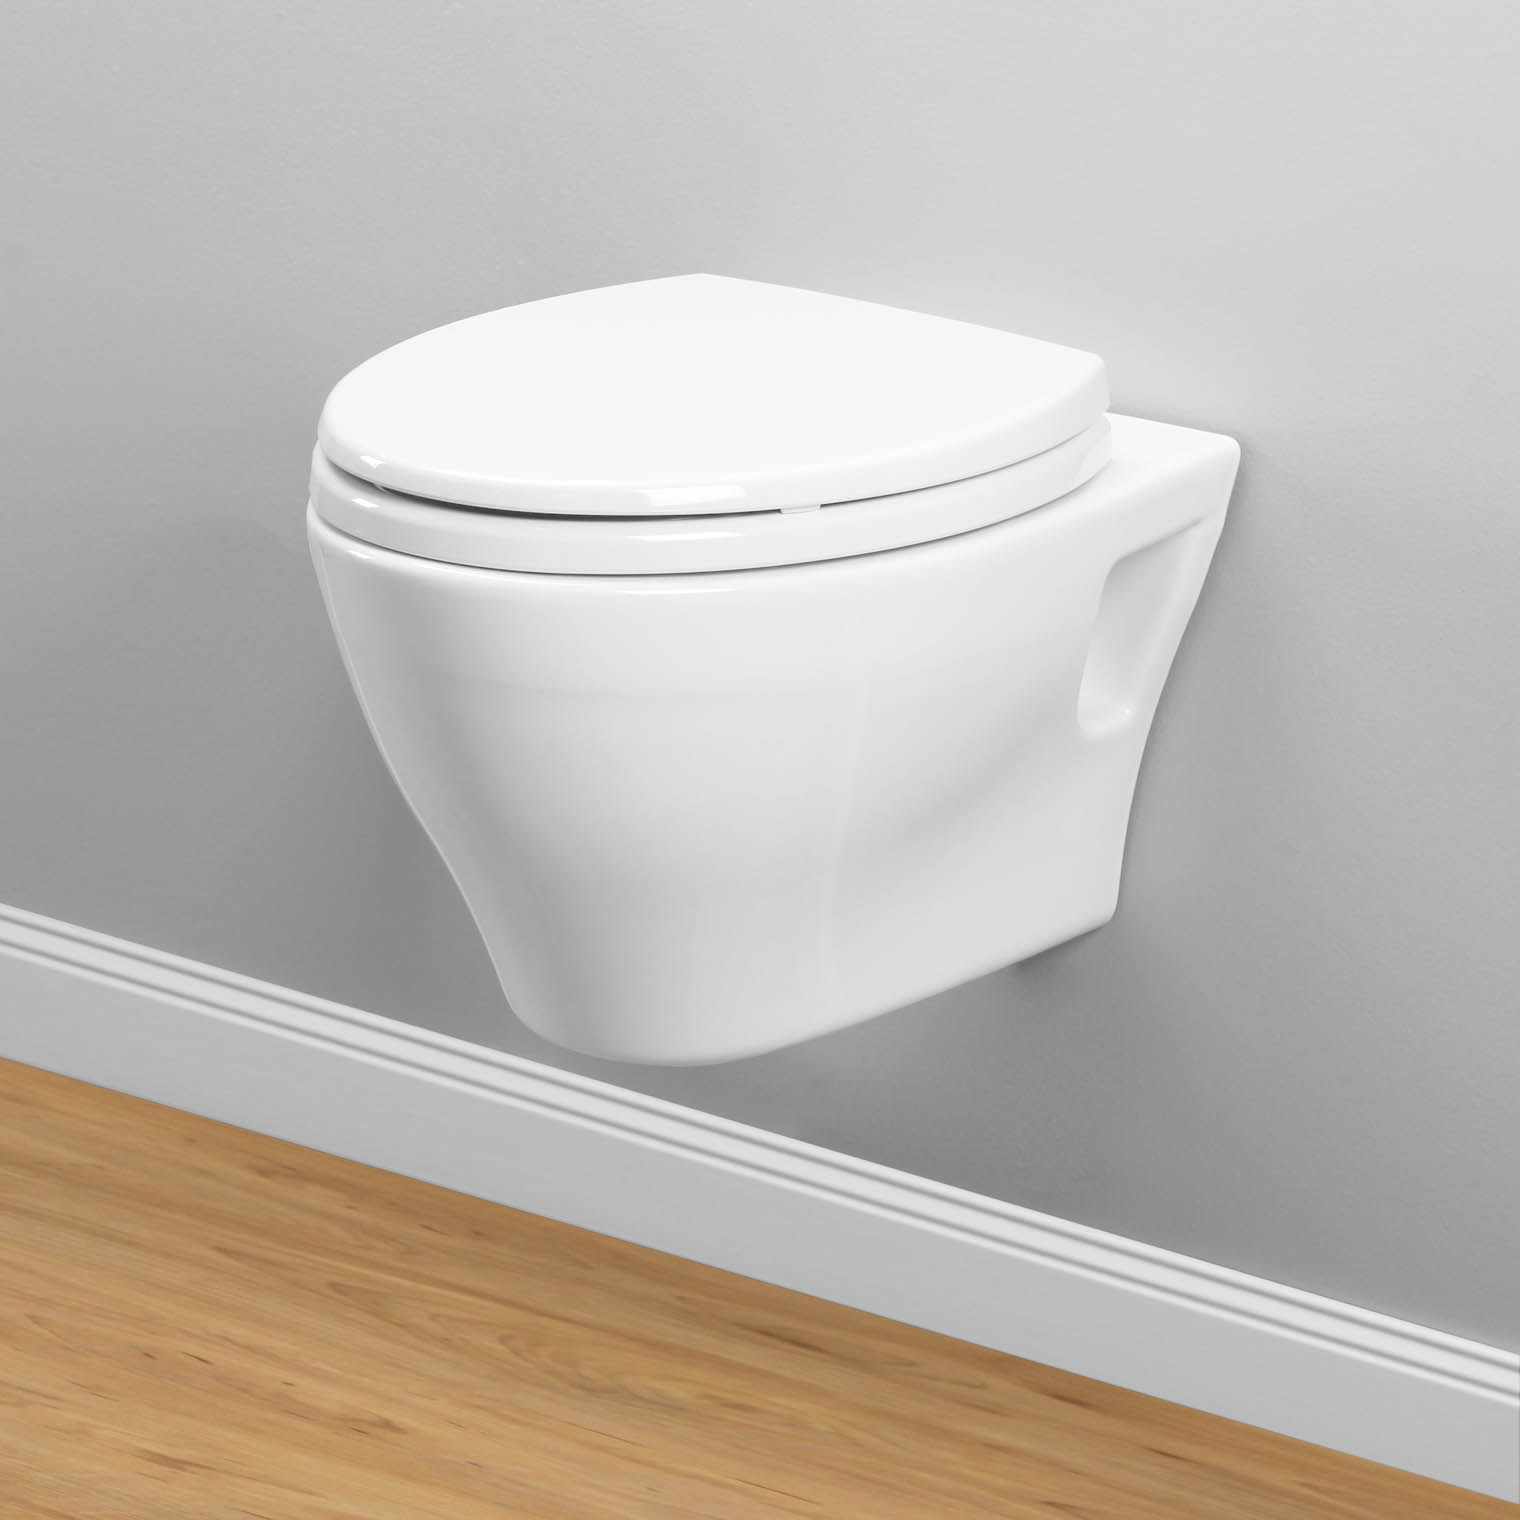 Bath & Shower Toto Toilet Toto Washlet